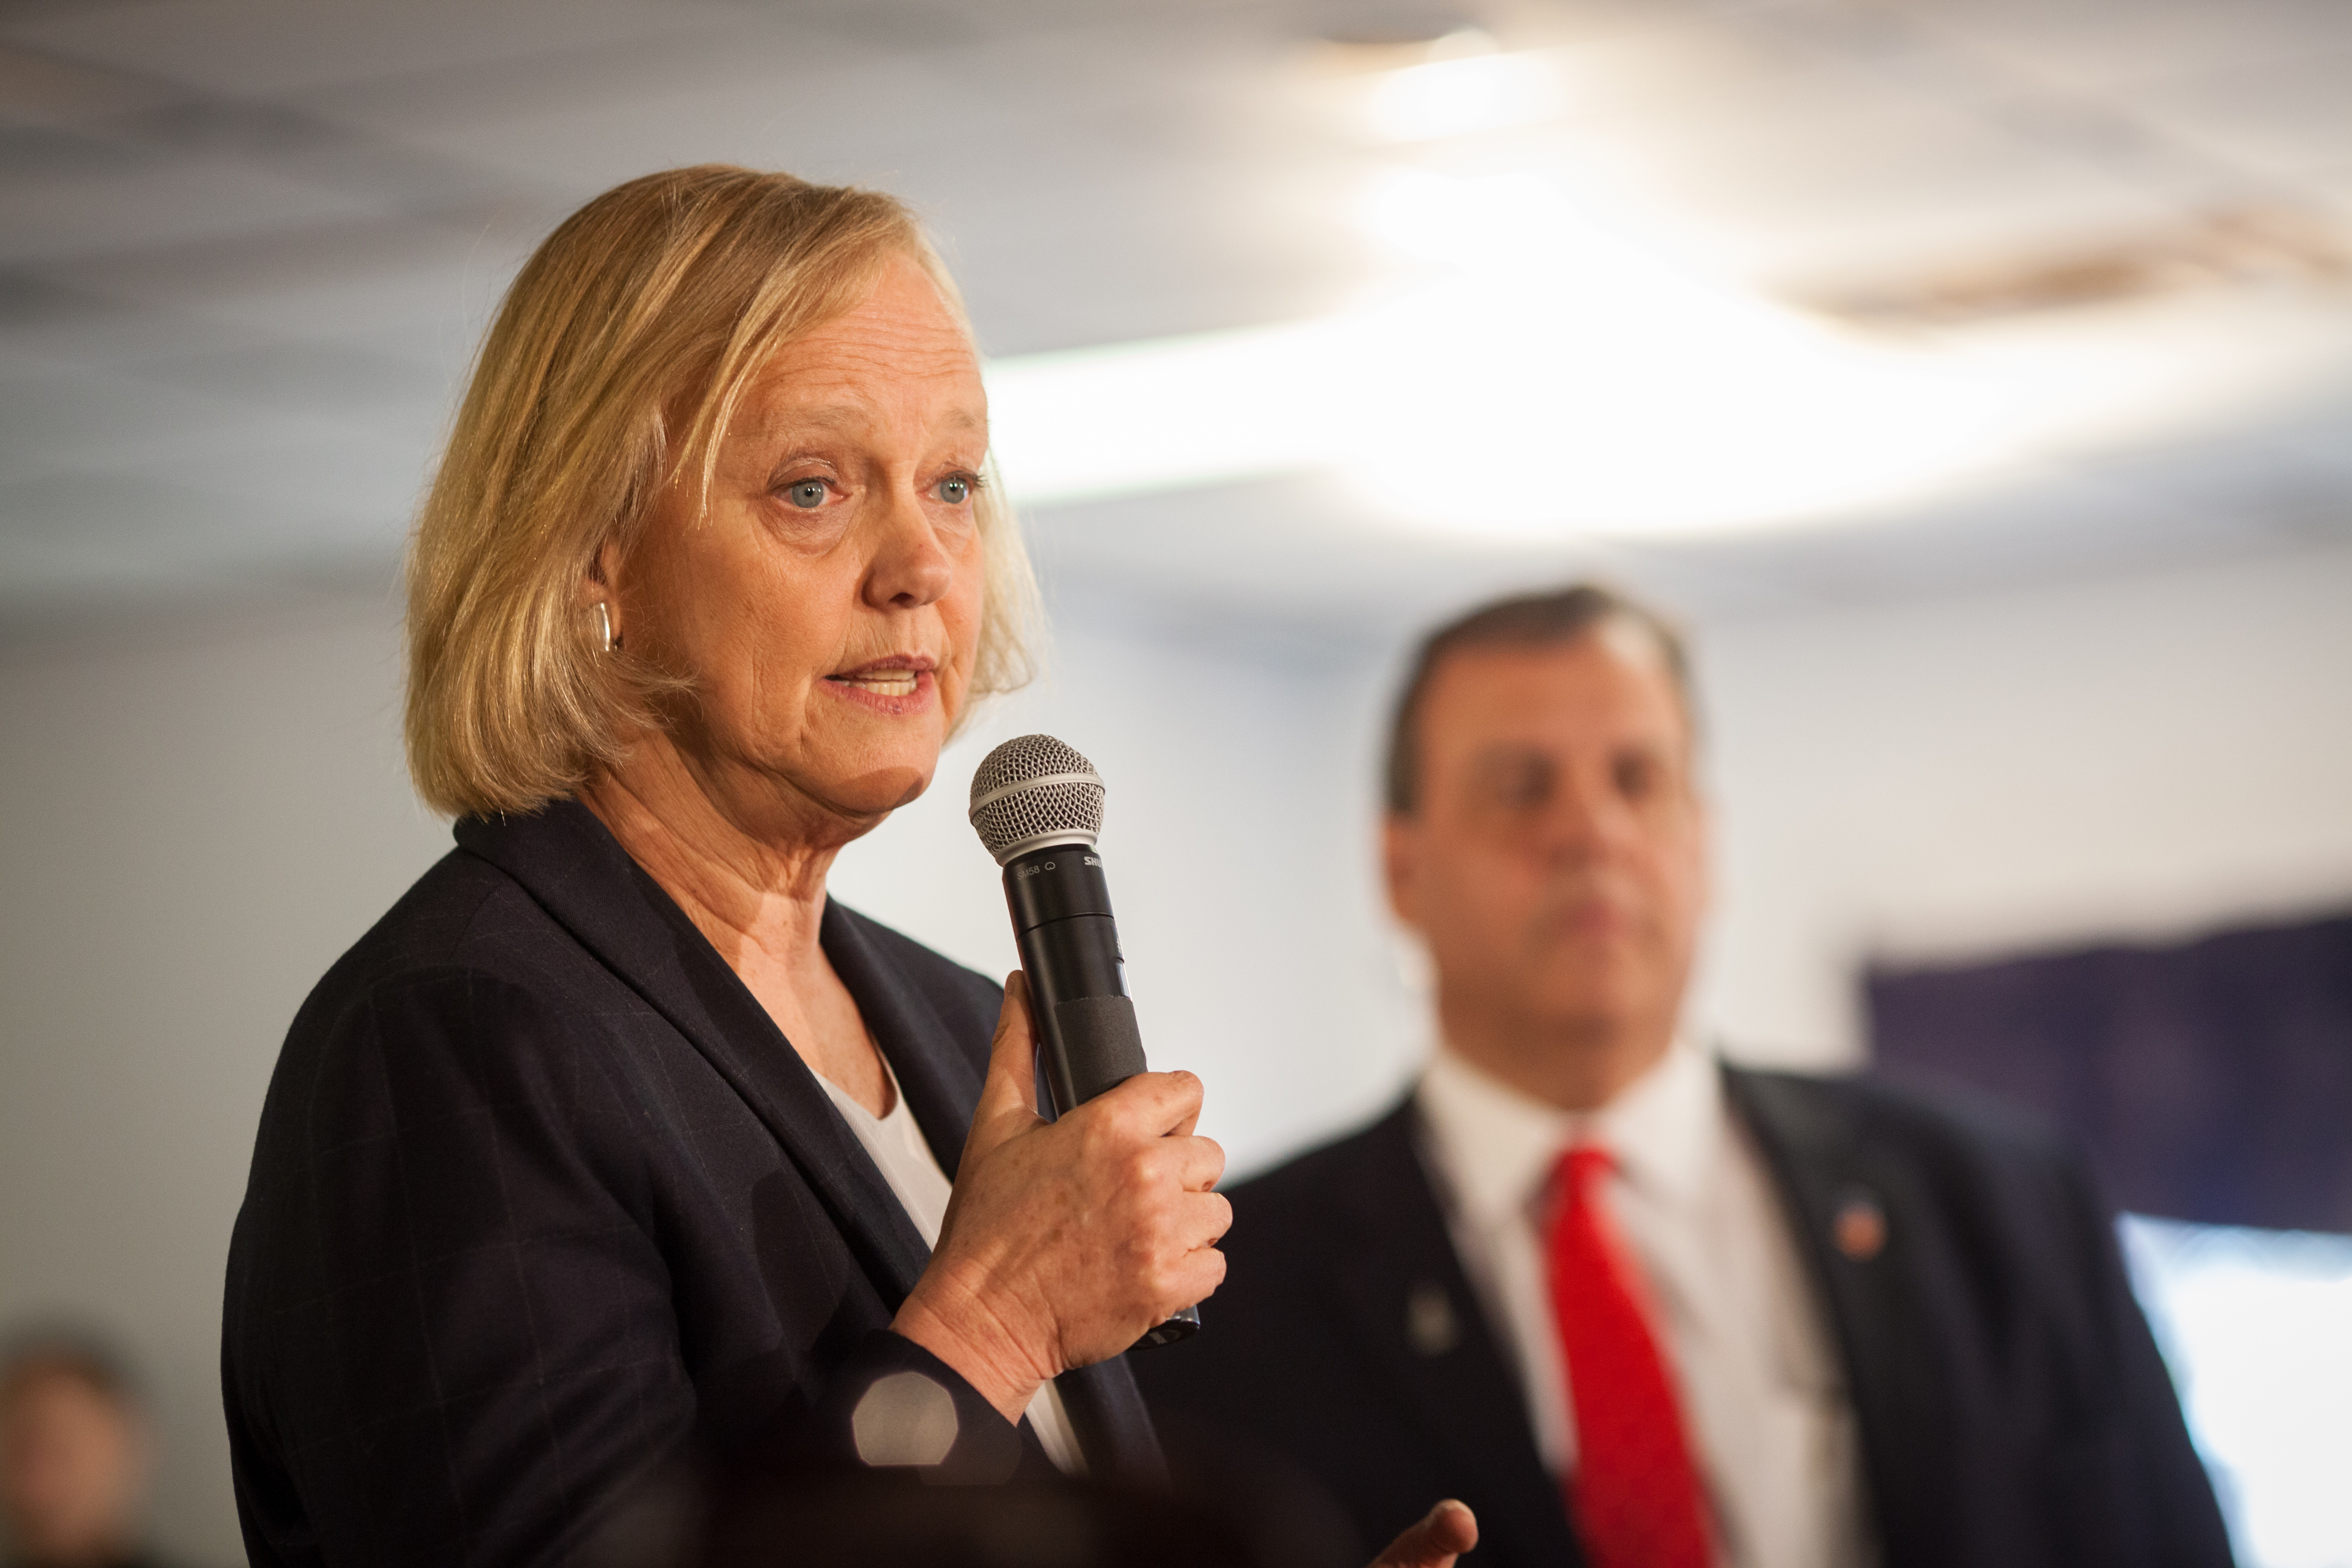 Hewlett Packard CEO Meg Whitman introduces New Jersey Gov. Chris Christie, then a Republican presidential hopeful,  at the Epping American Legion on Feb. 2, 2016 in Epping, New Hampshire. She announced her support for Democratic nominee Hillary Clinton on Aug. 2.